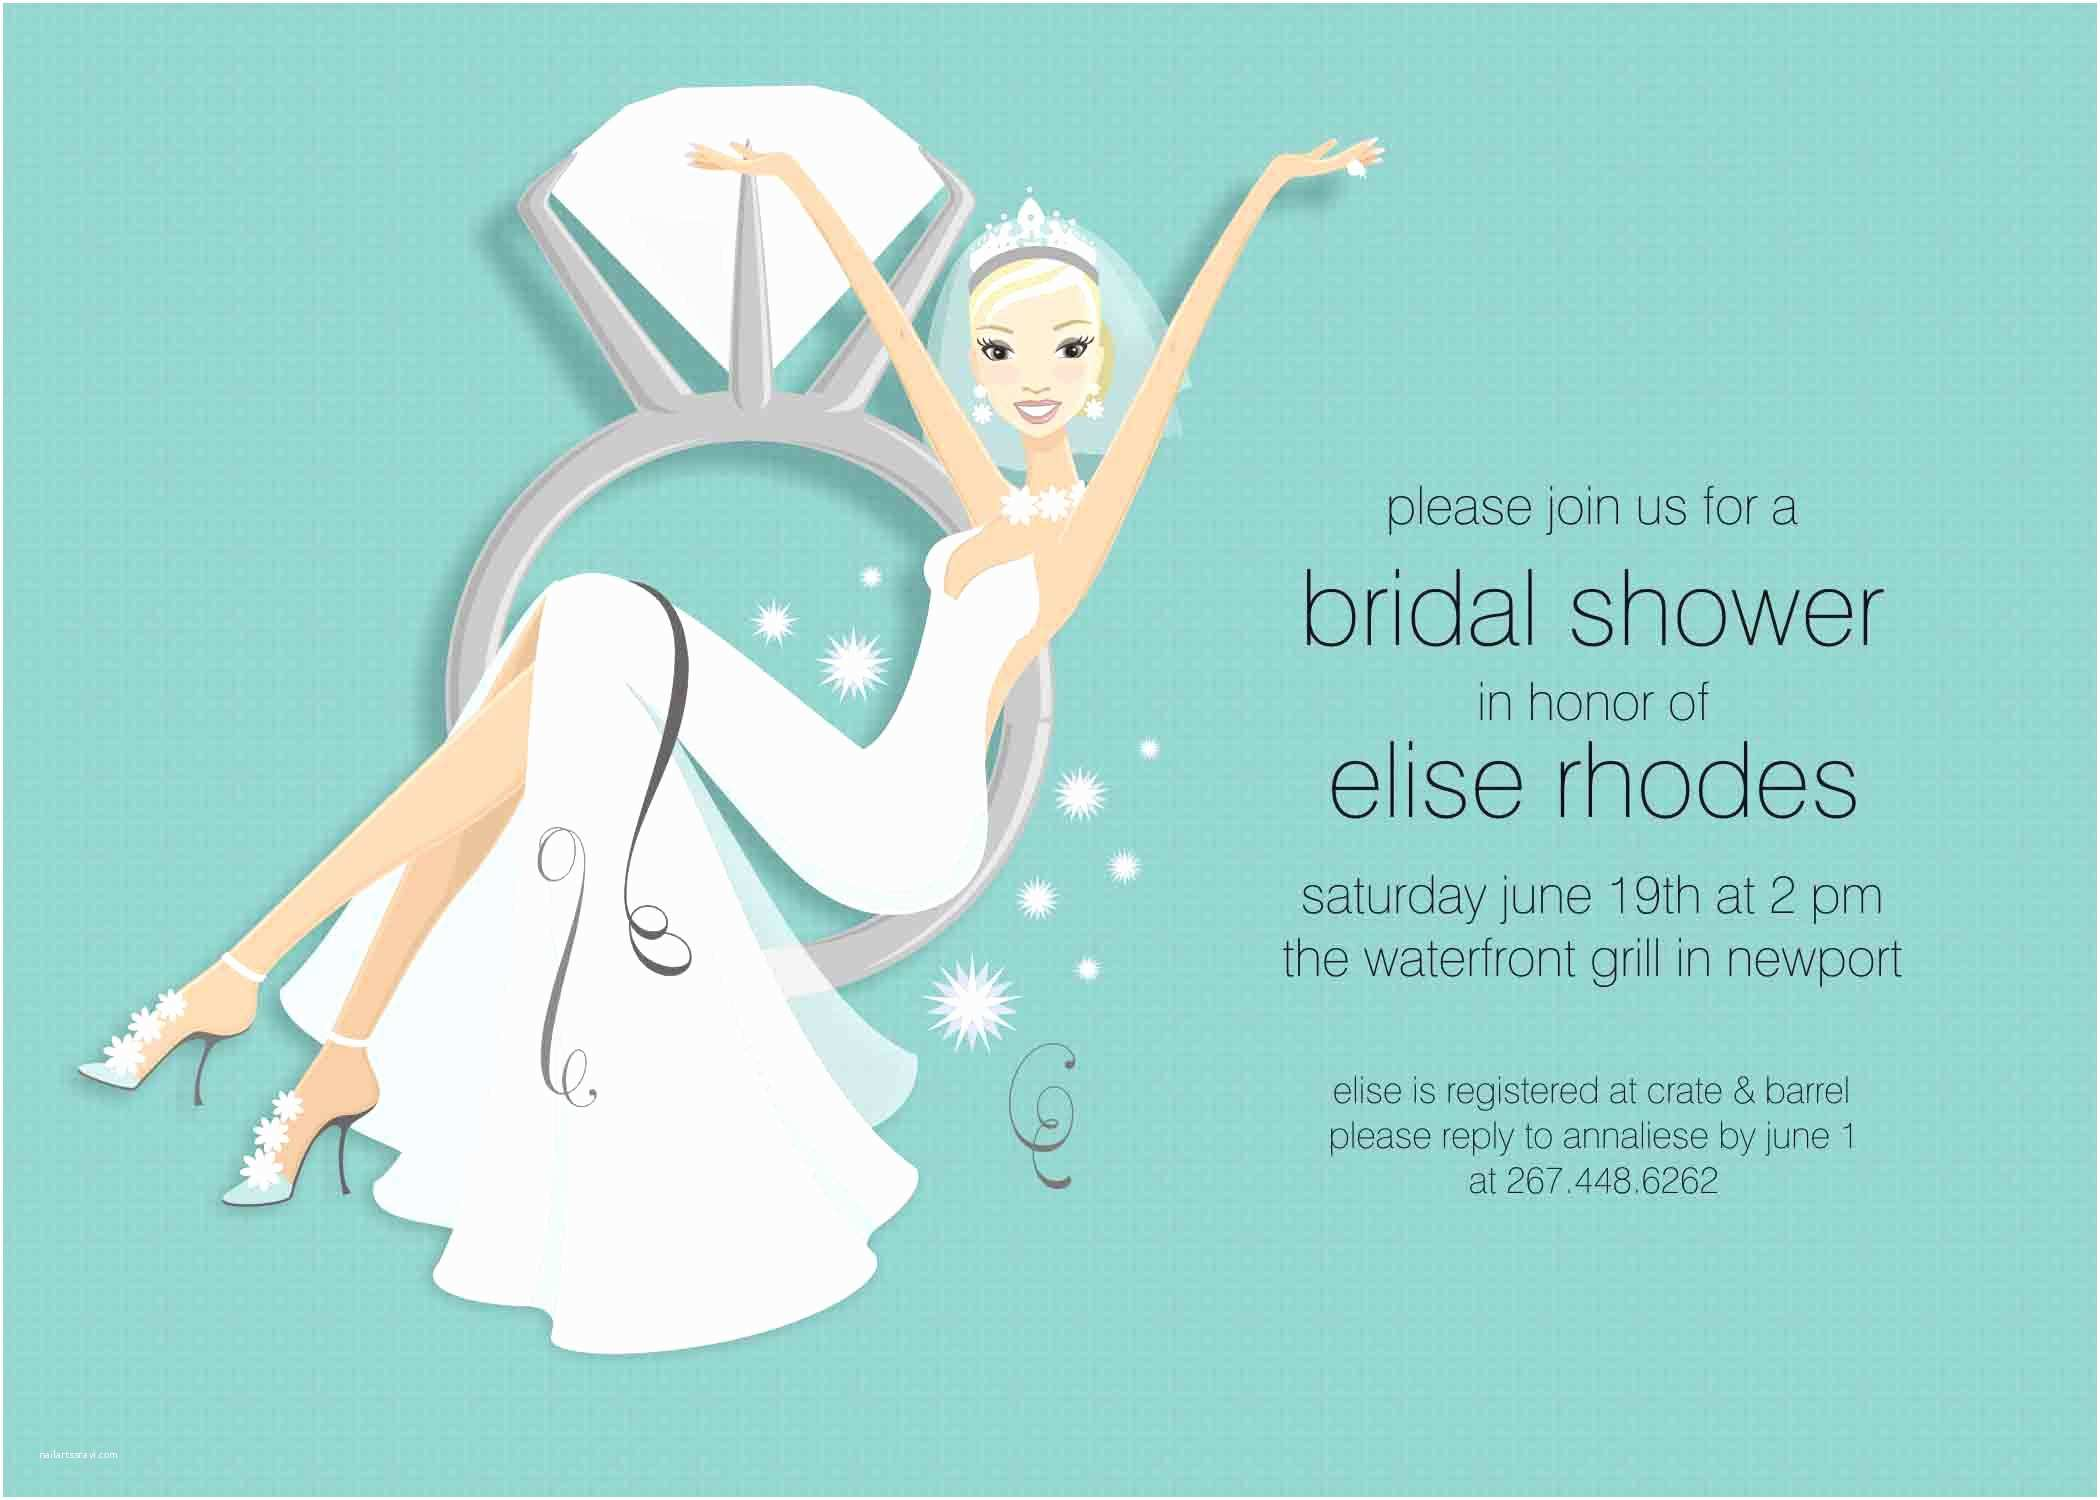 Inexpensive Bridal Shower Invitations Card Template Best Wedding Invitations Cards Card